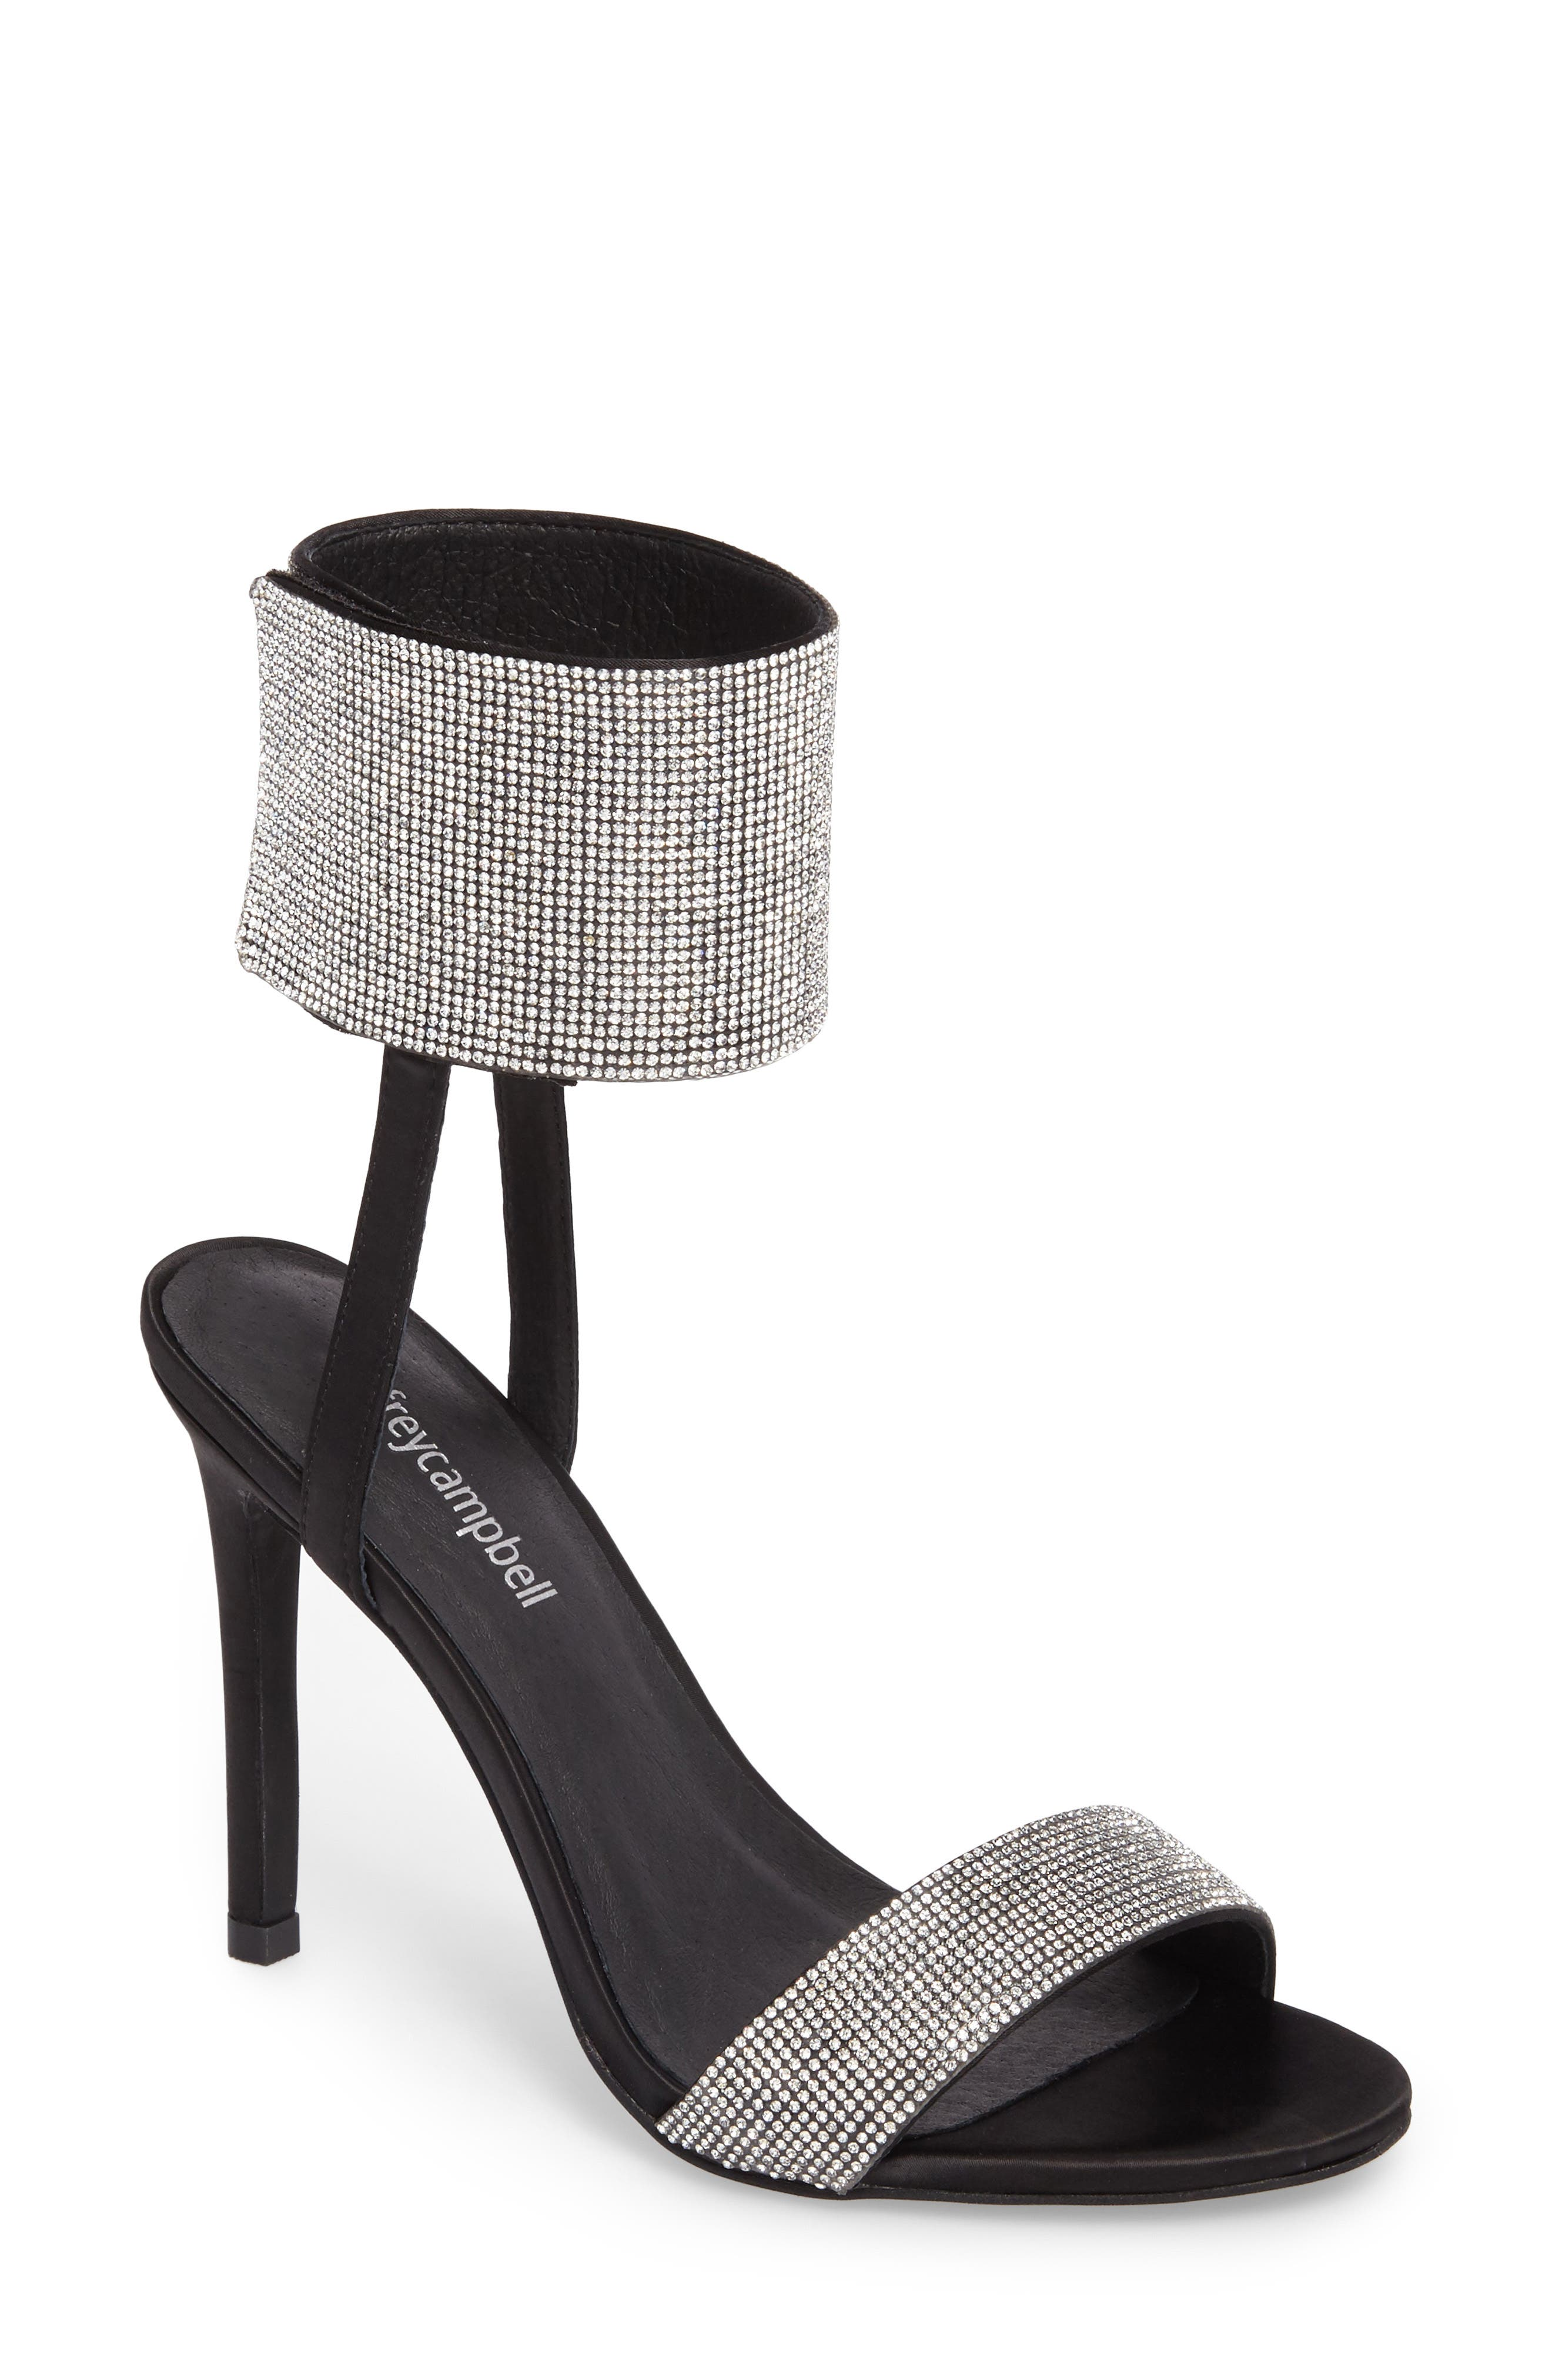 Main Image - Jeffrey Campbell Frost Ankle Cuff Sandal (Women)